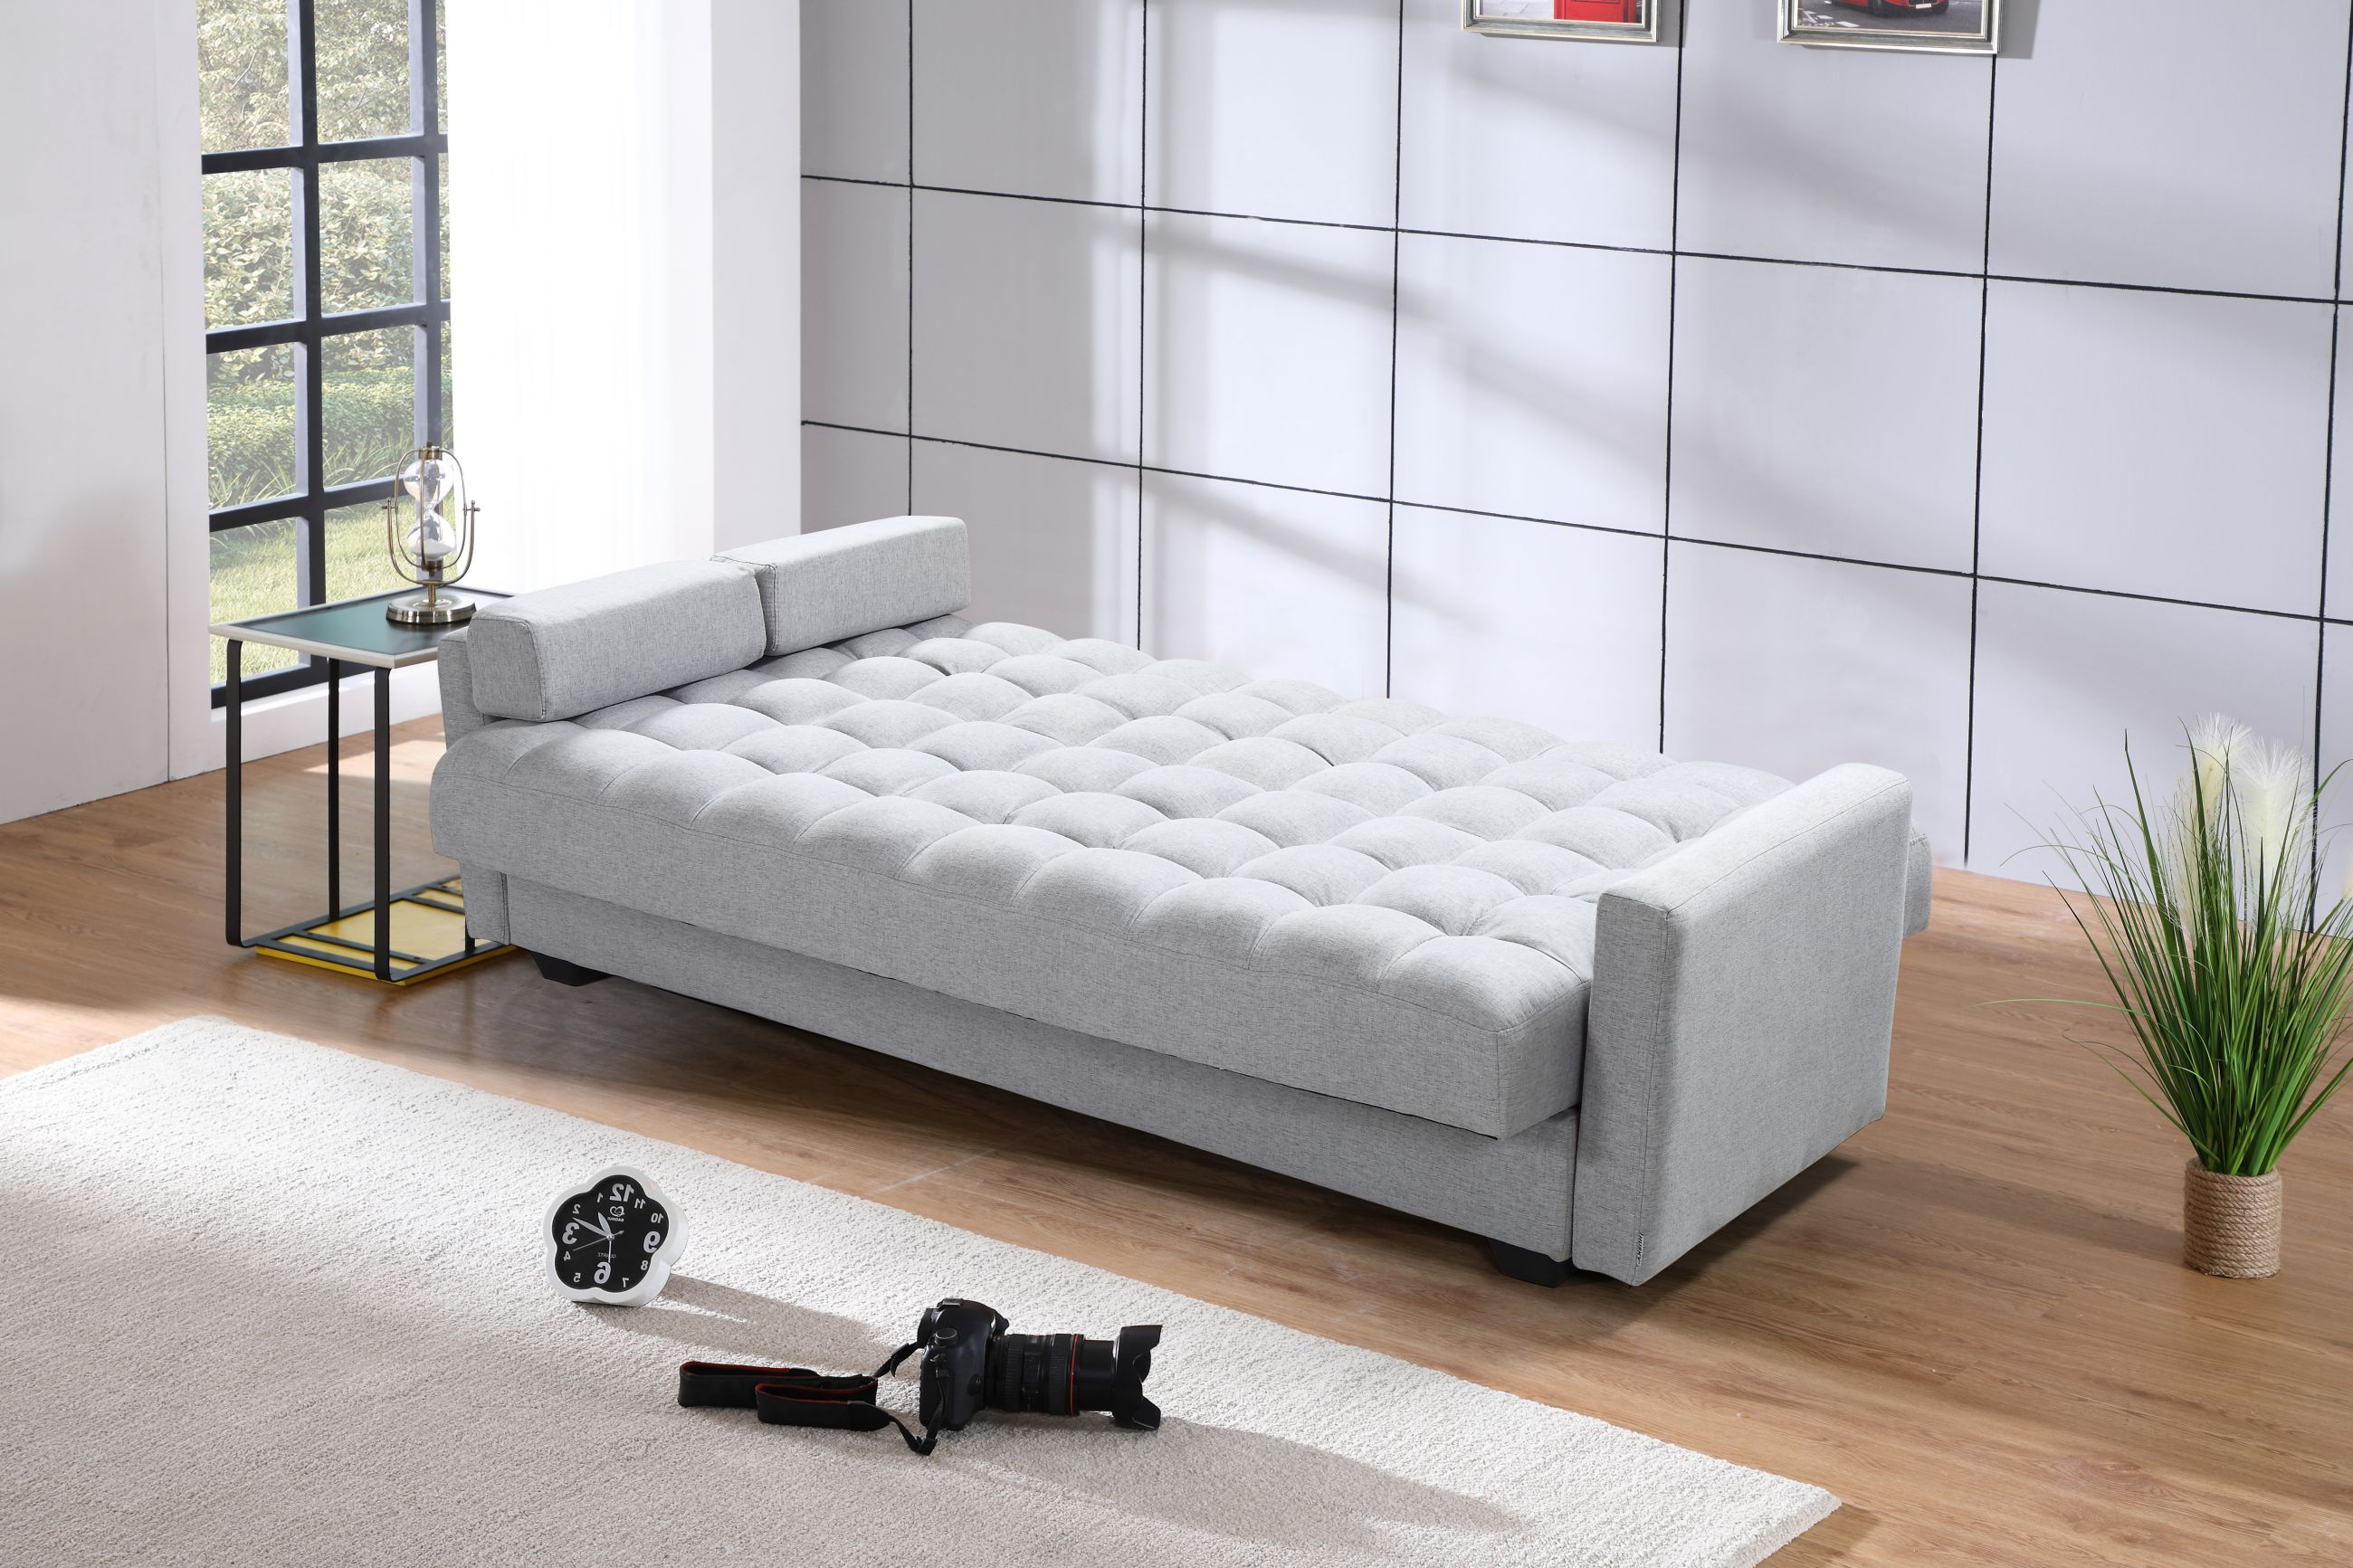 Sensational Sara Sofa Bed 3 In 1 Sofa Bed Storage Grey Theyellowbook Wood Chair Design Ideas Theyellowbookinfo